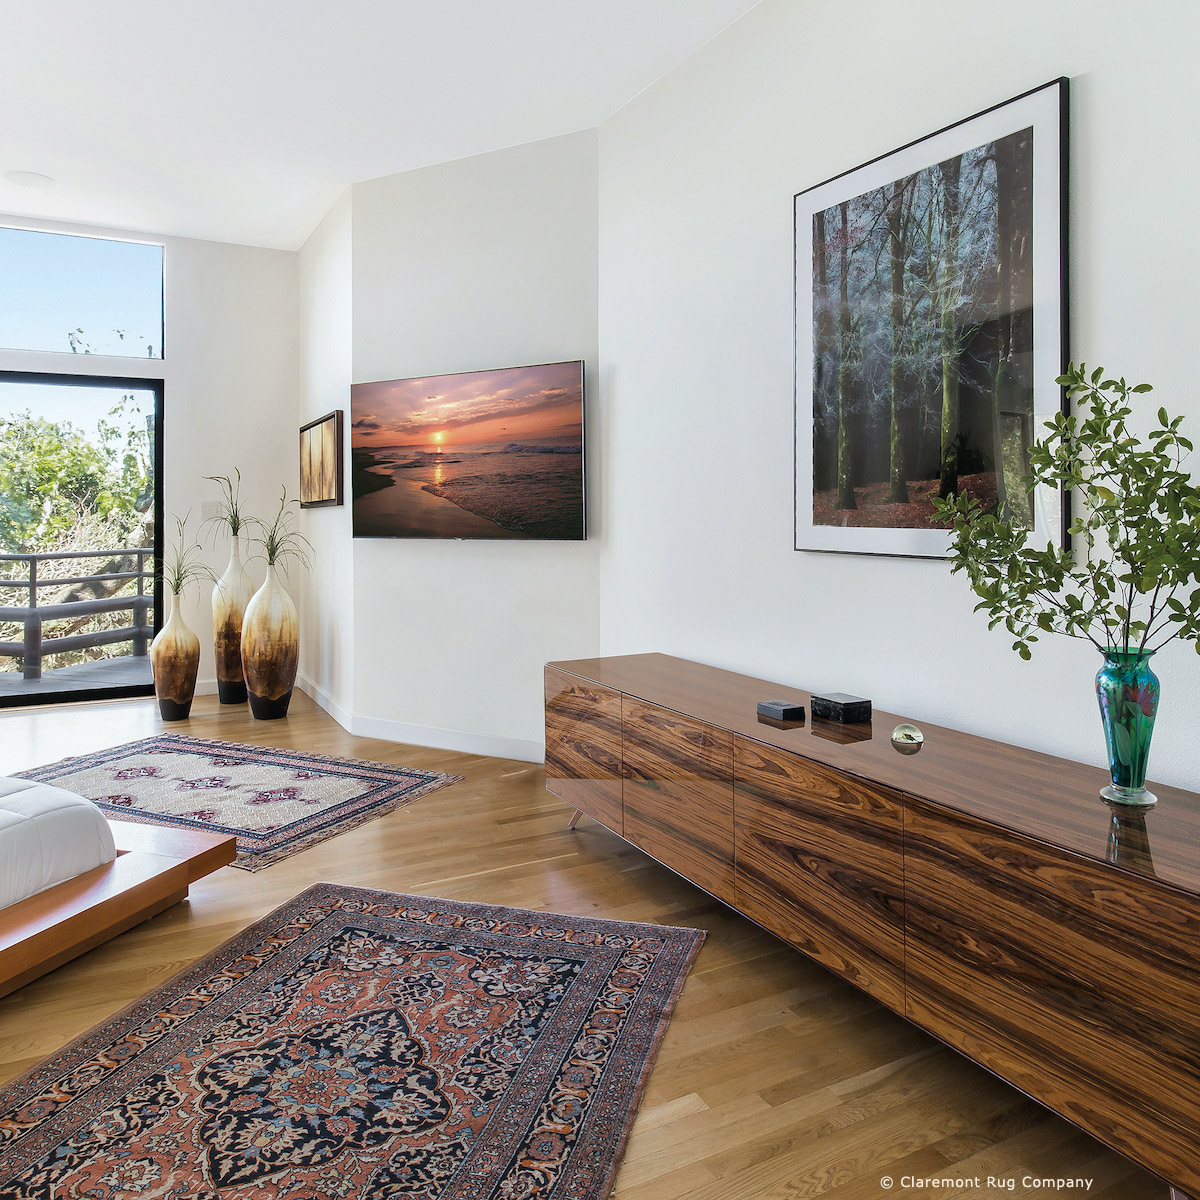 Laver kirman antique rugs in a contemporary family room